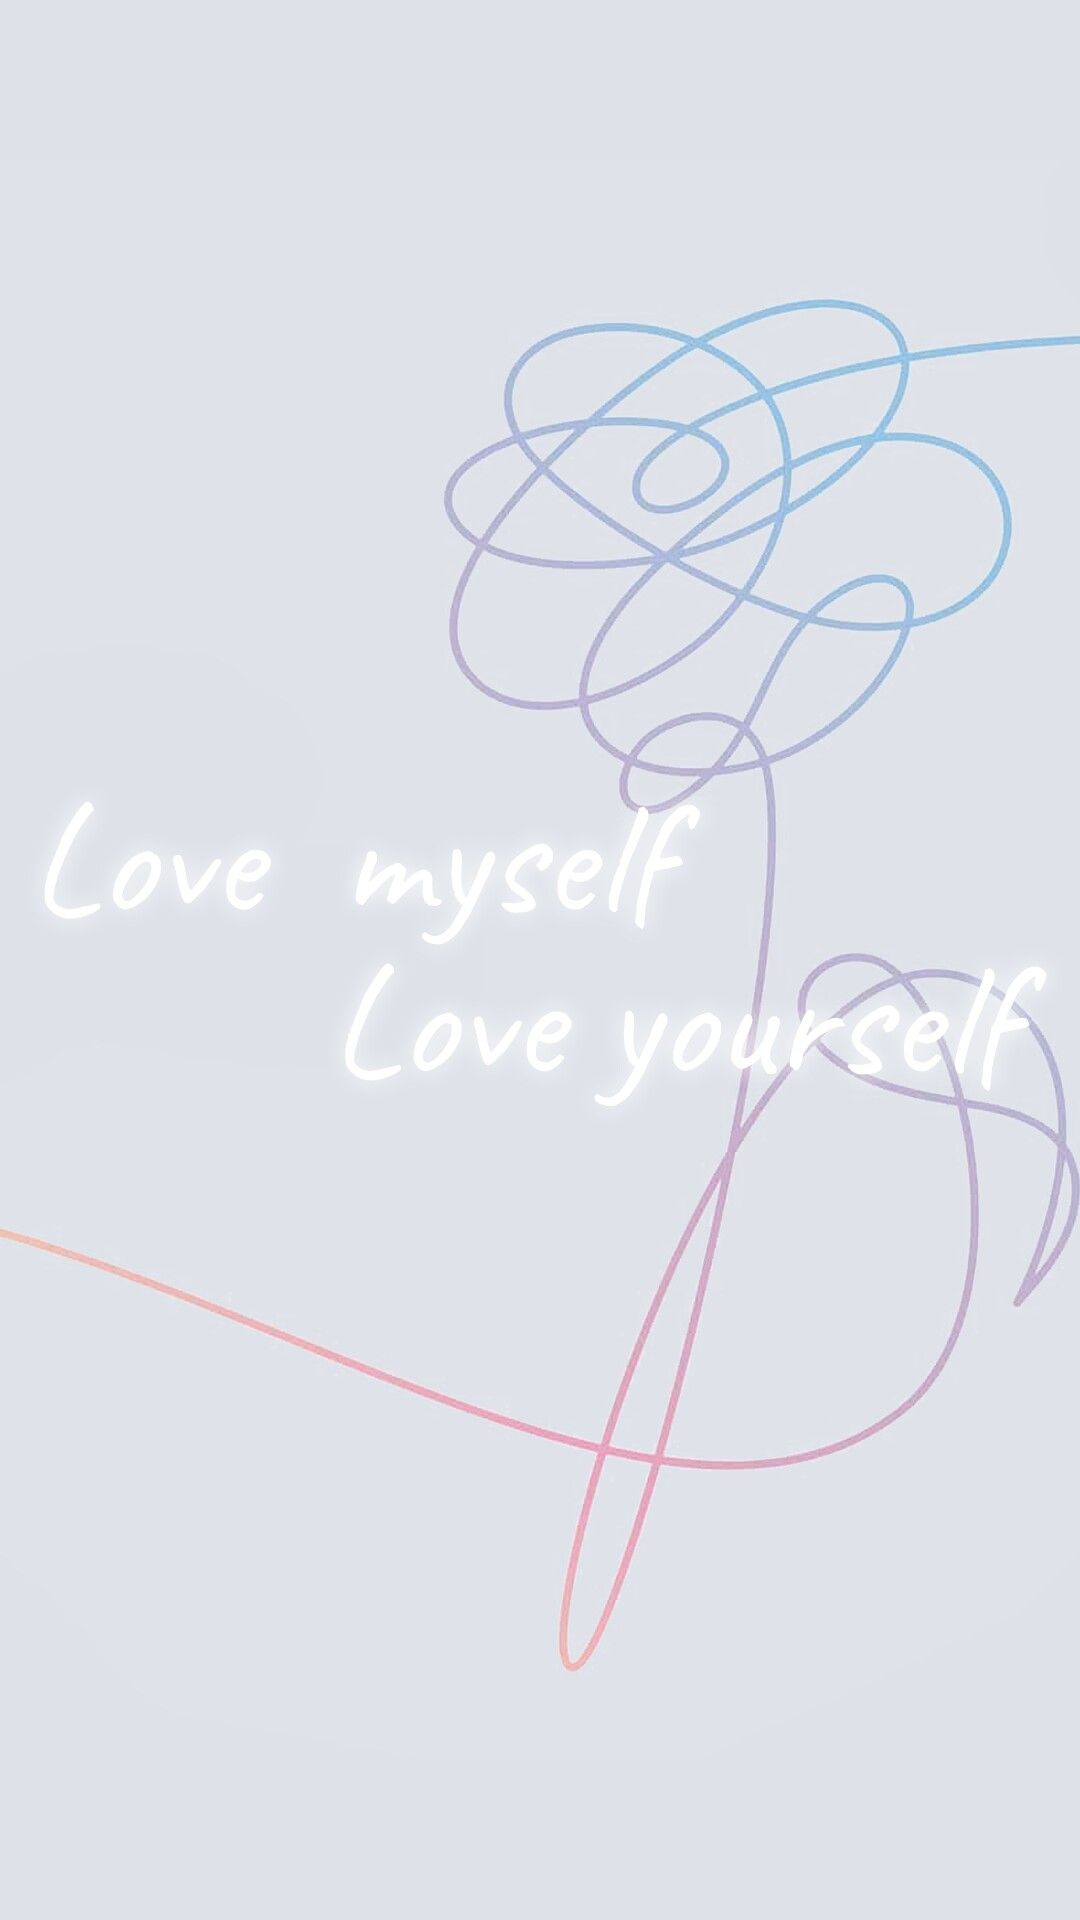 Love Myself Love Yourself Bts Wallpaper Ponsel Gambar Fakta Lucu